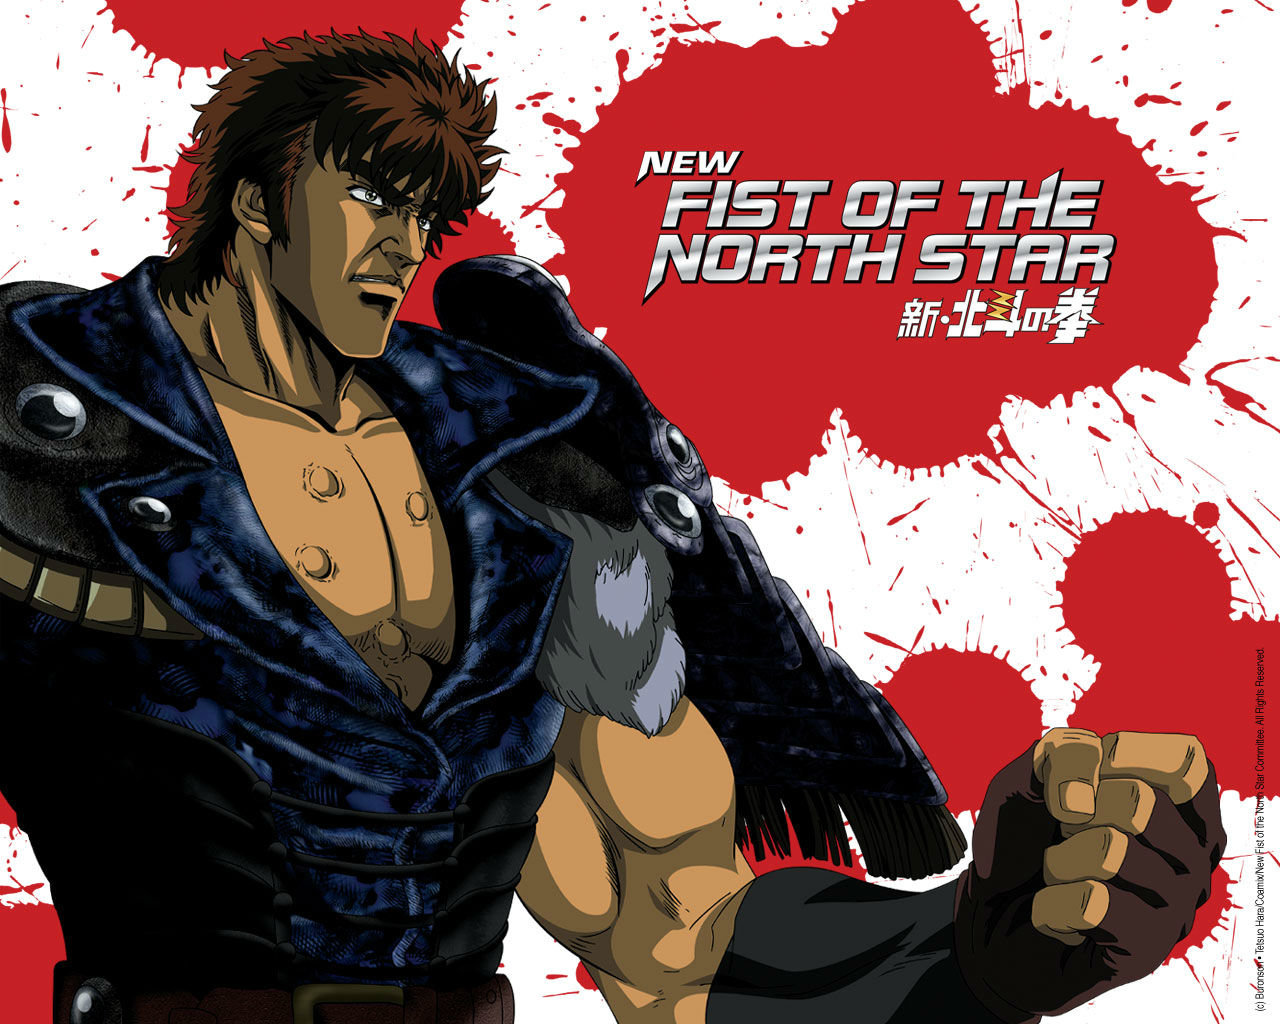 Download hd 1280x1024 Fist Of The North Star desktop wallpaper ID:315062 for free